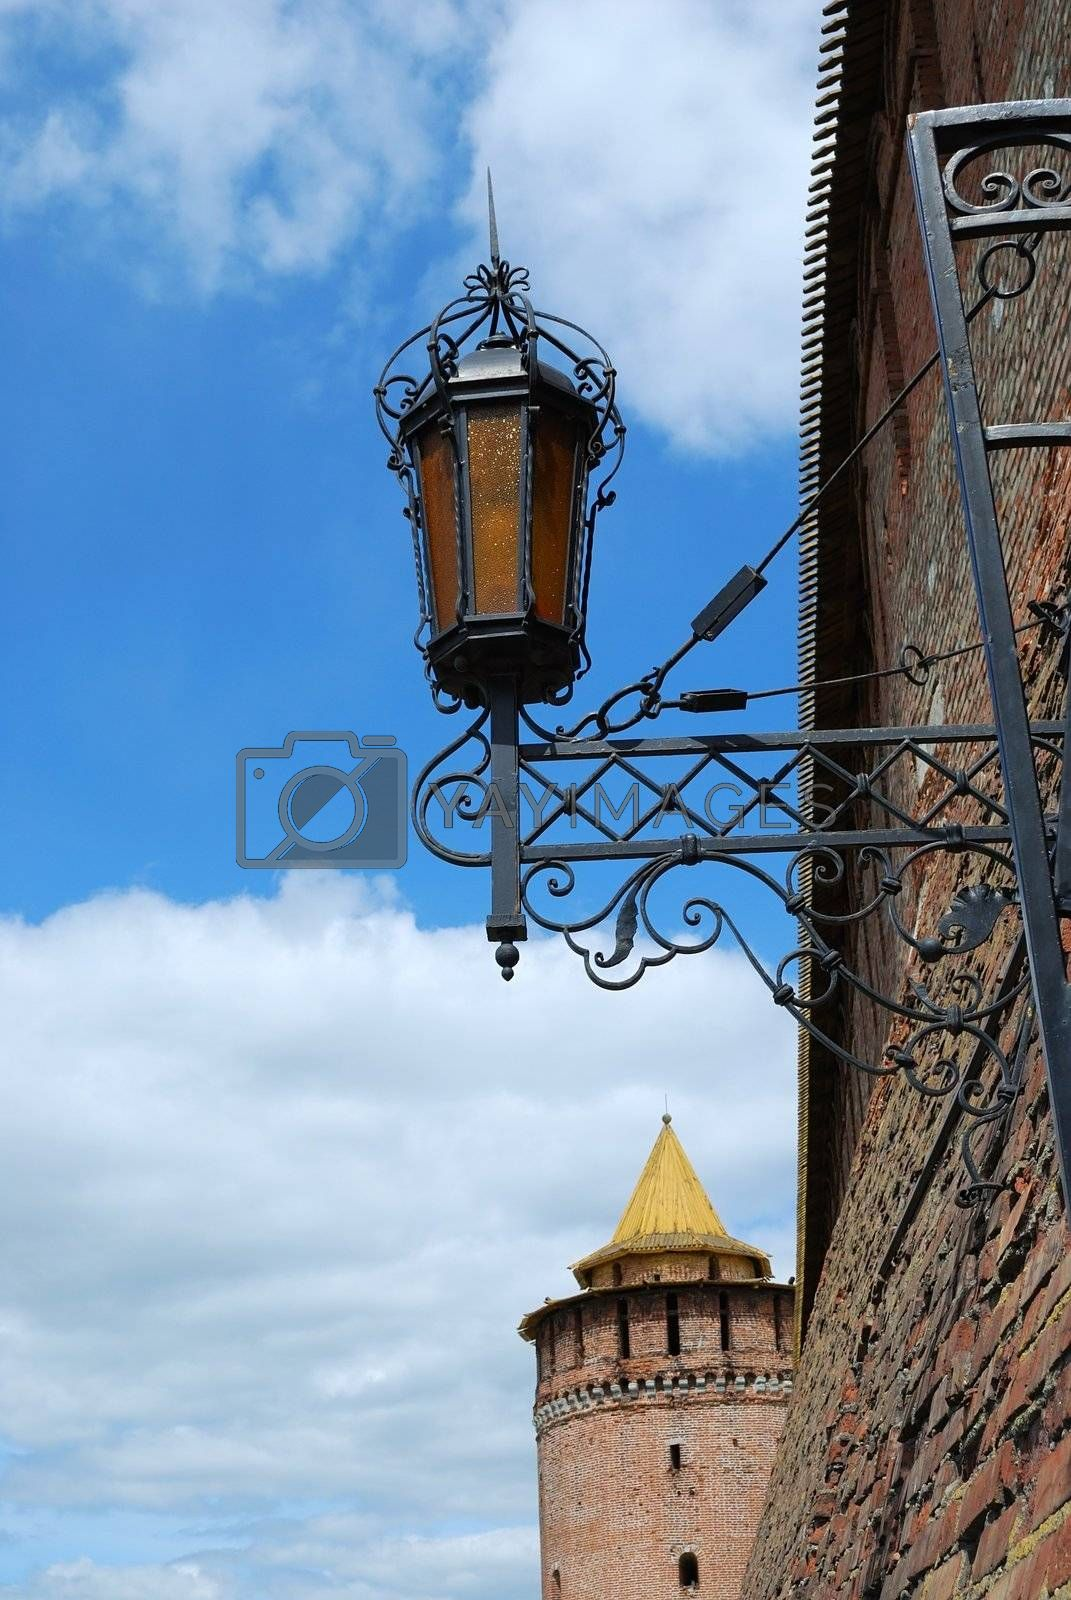 Wall, tower and lamp by svetico